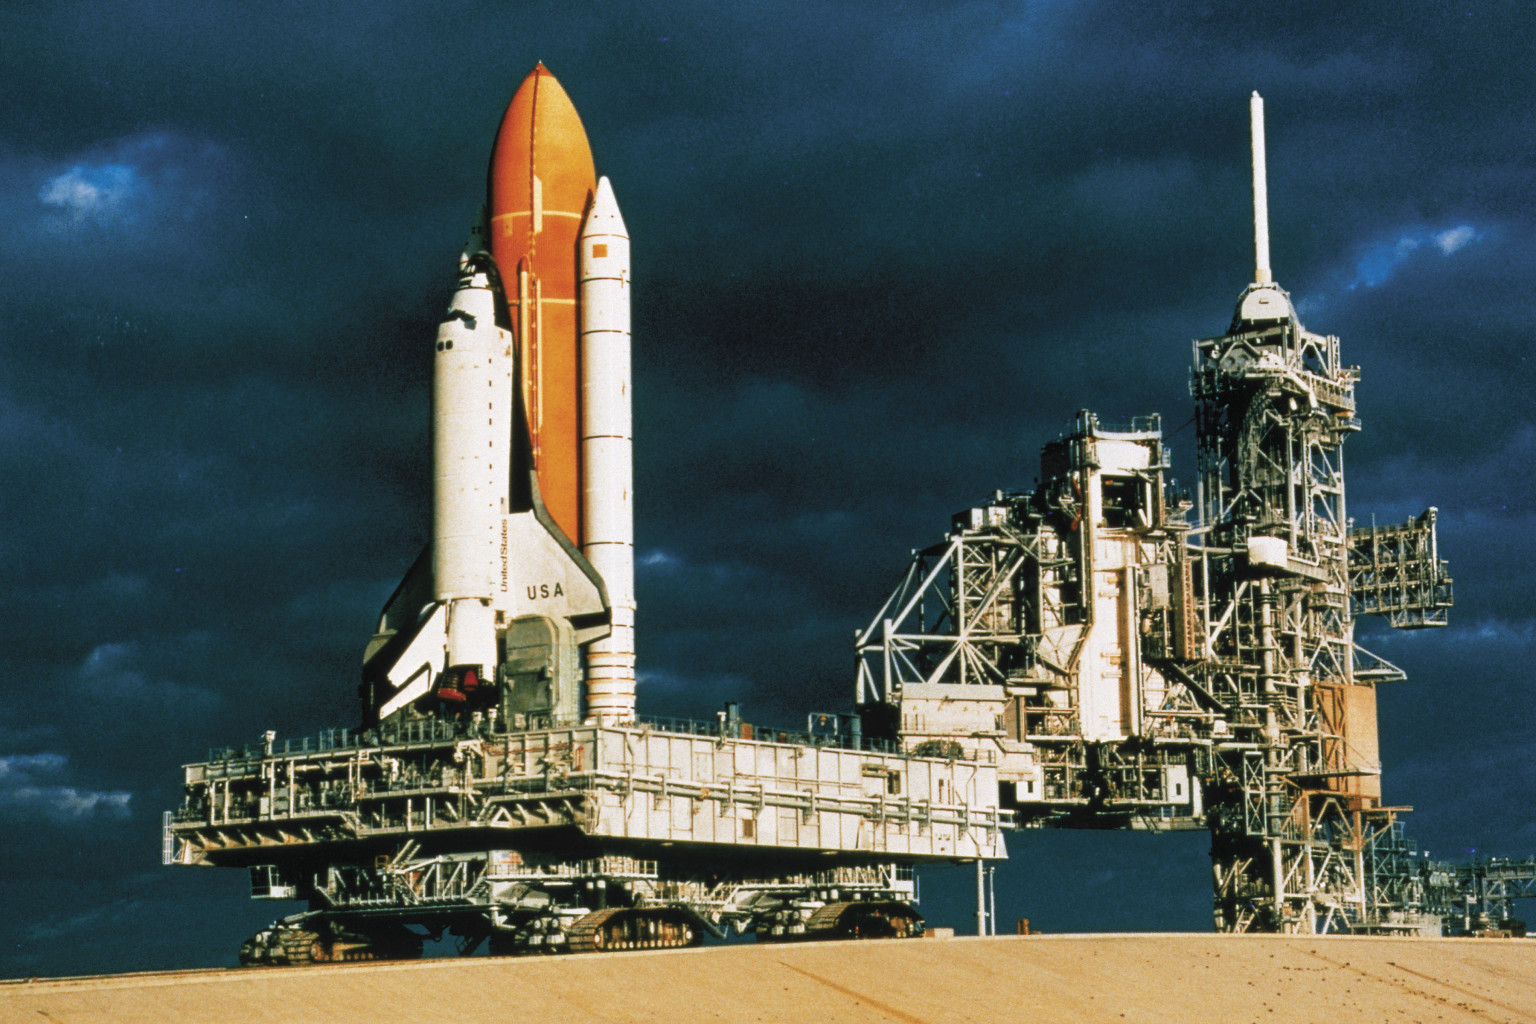 Memories of Challenger Ignited by Antares Explosion | HuffPost